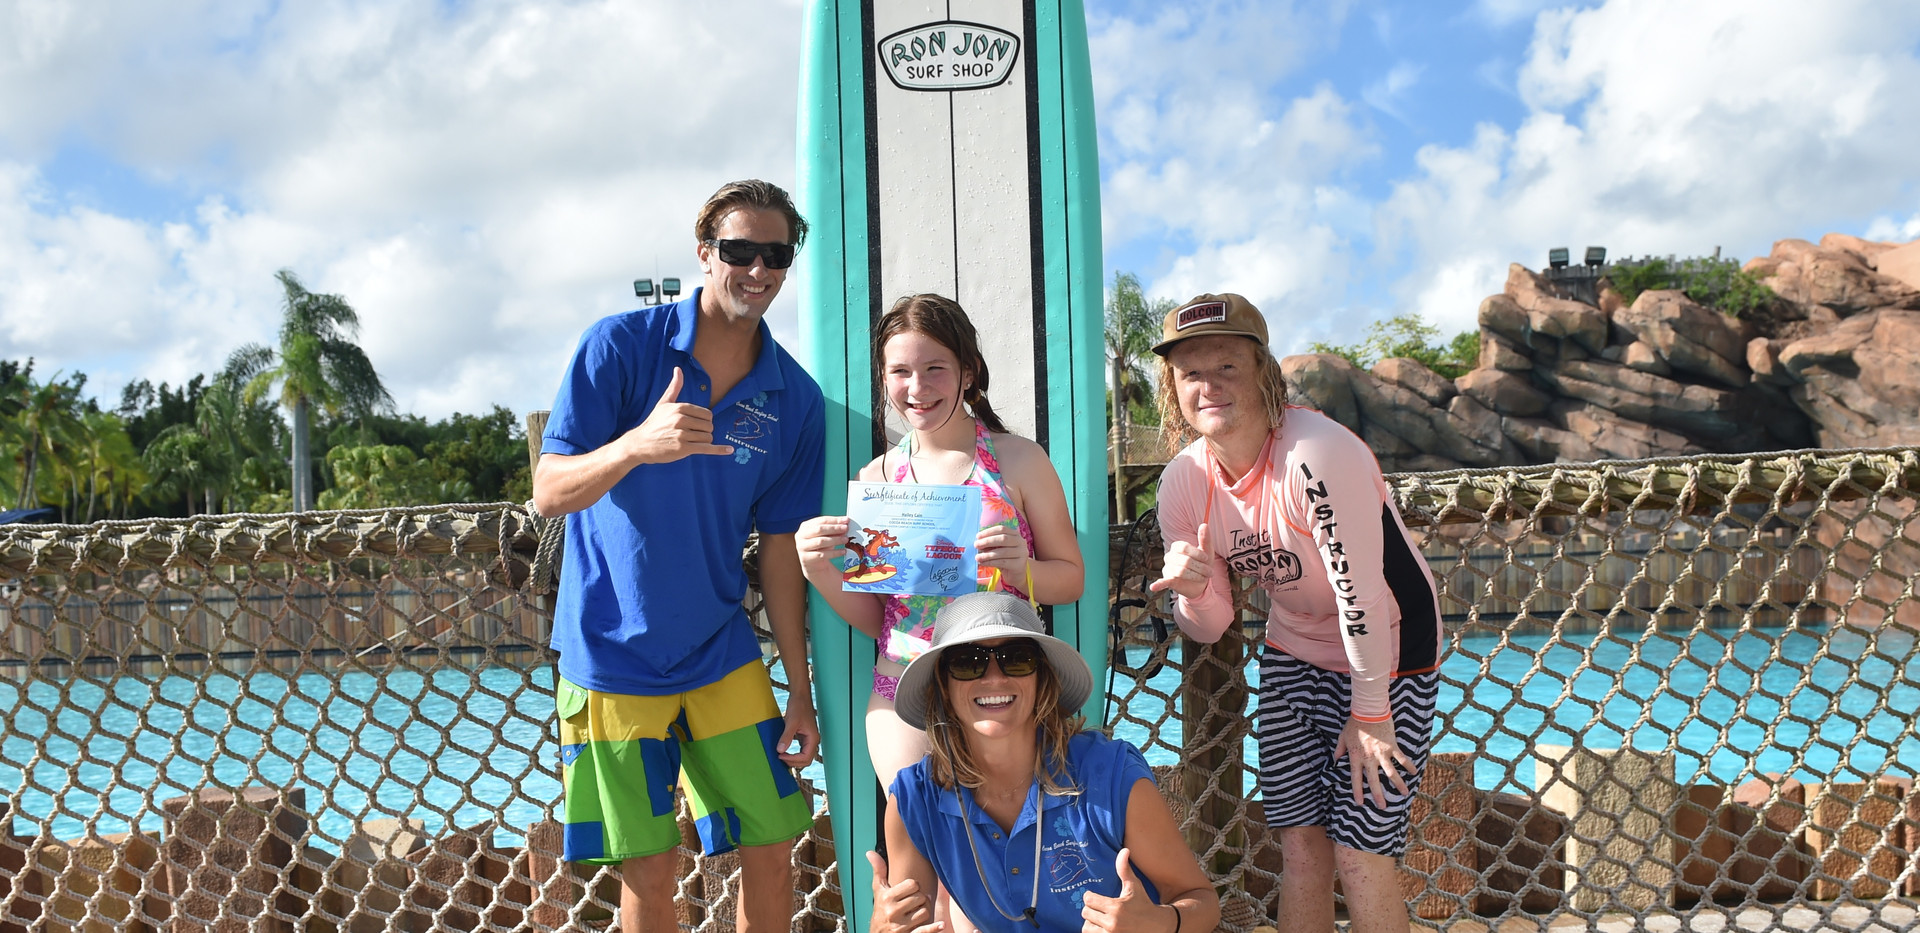 PhotoPass_Visiting_WDWGAMEDAY_4131920397